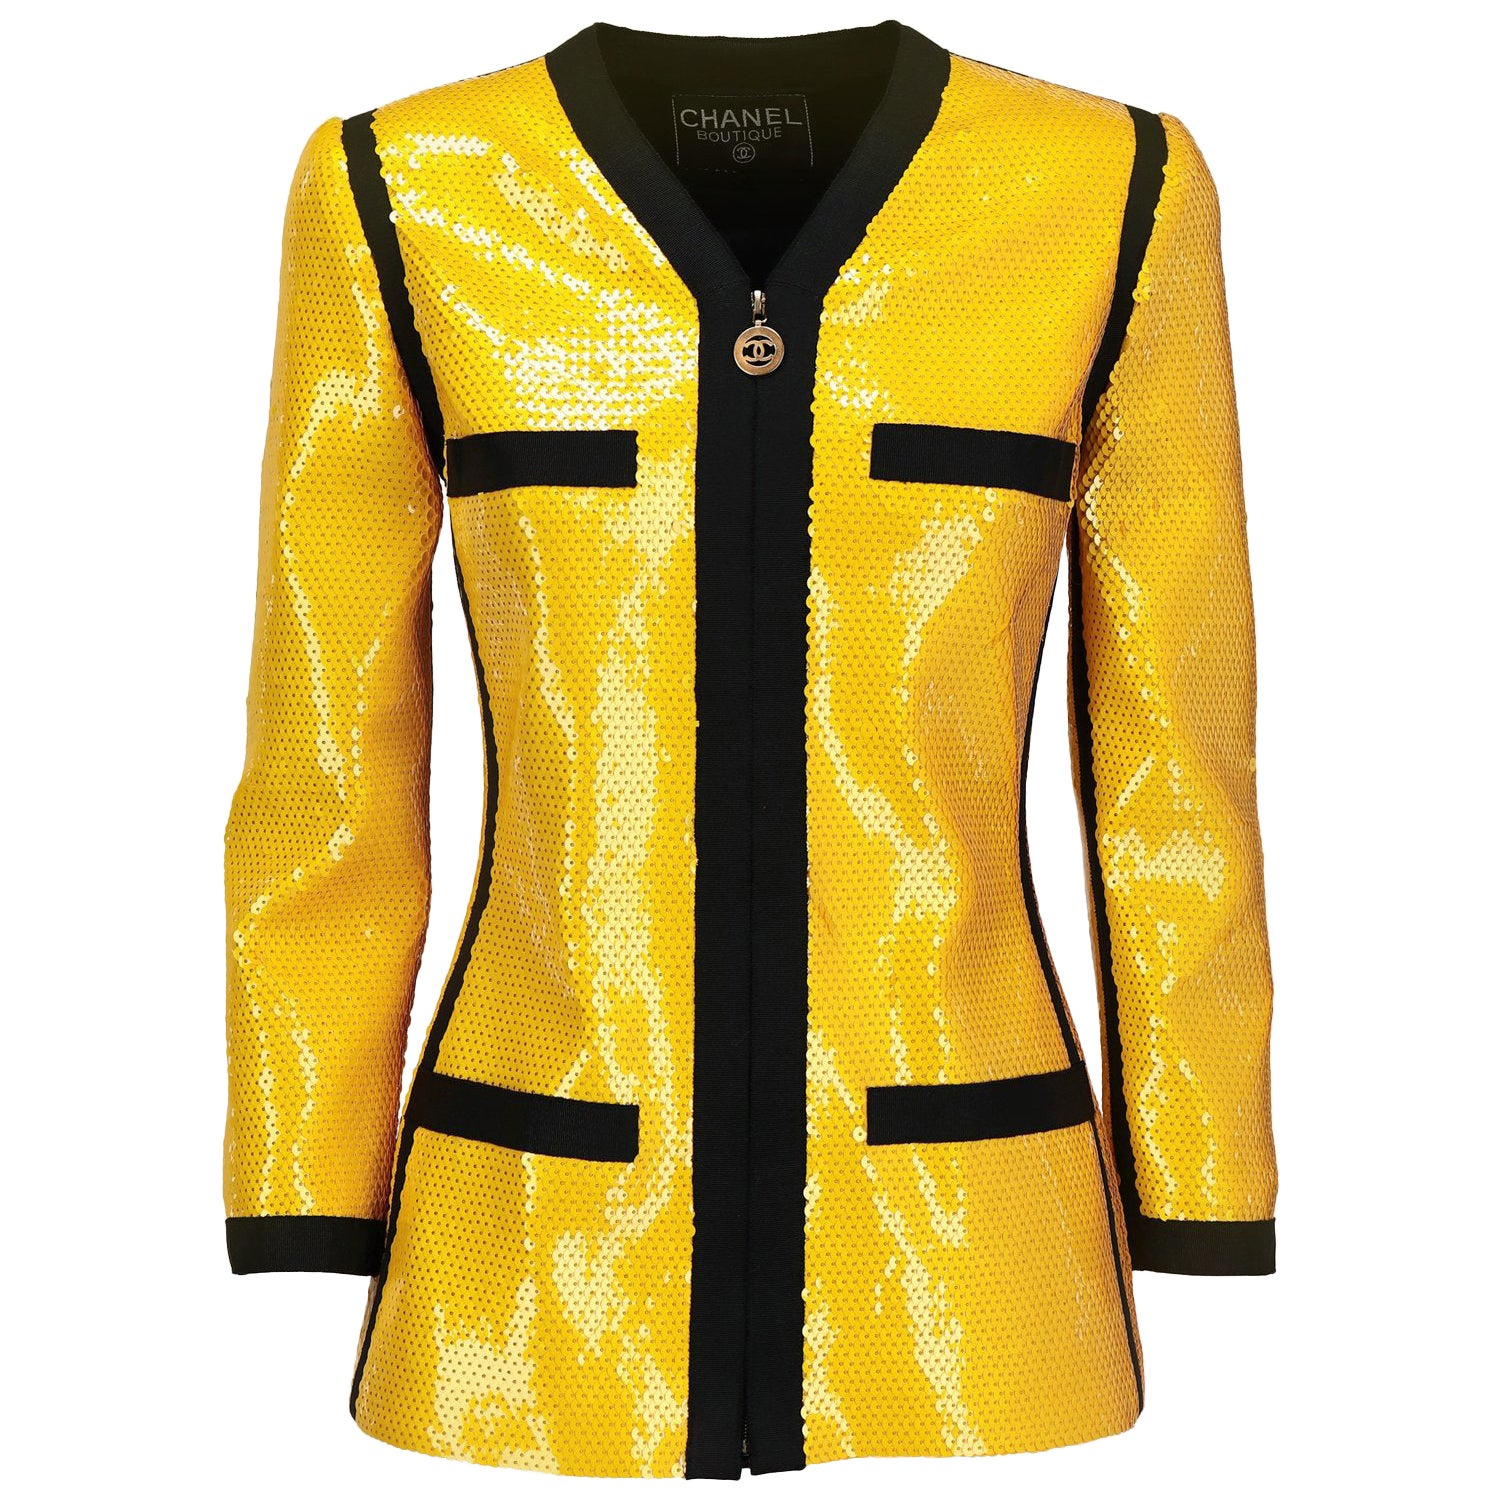 1990s Chanel Yellow Sequins Jacket